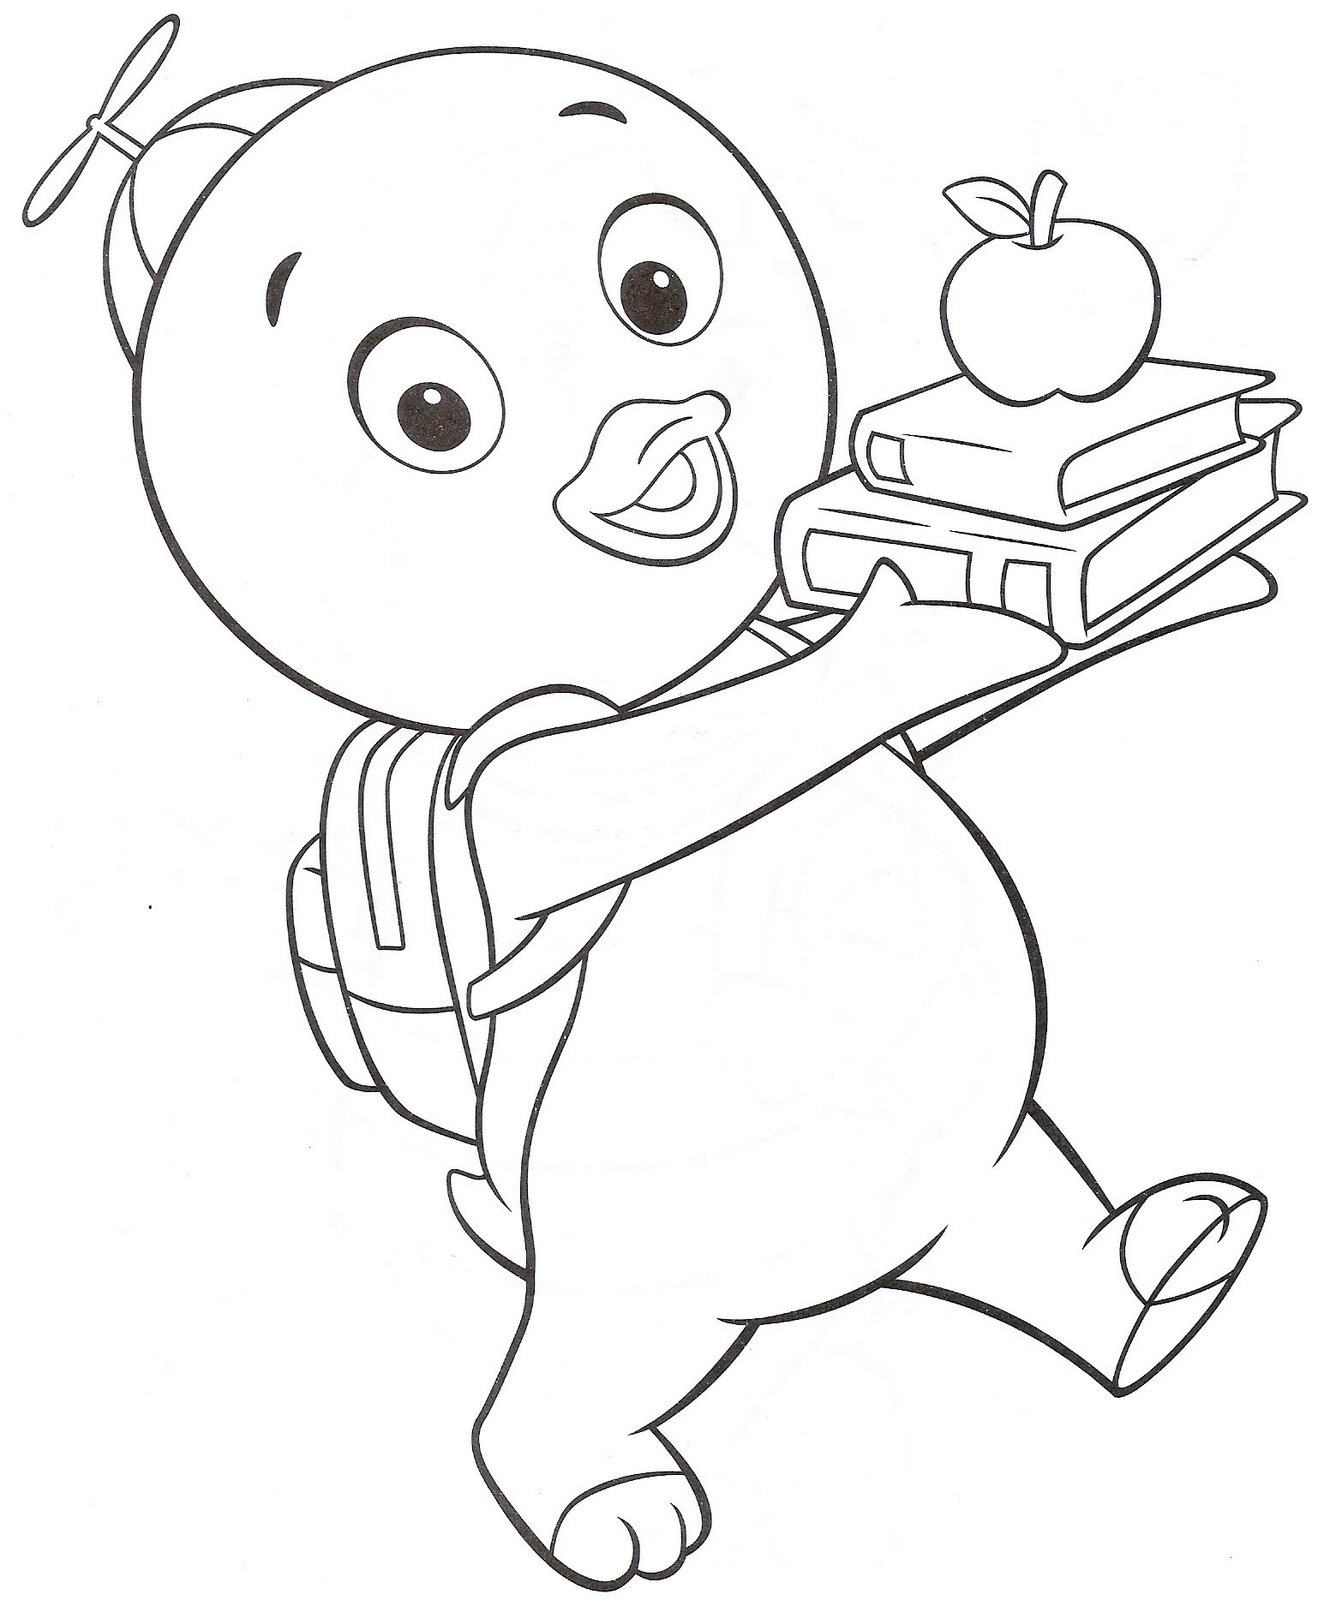 Coloring Pages To Print : Free printable backyardigans coloring pages for kids